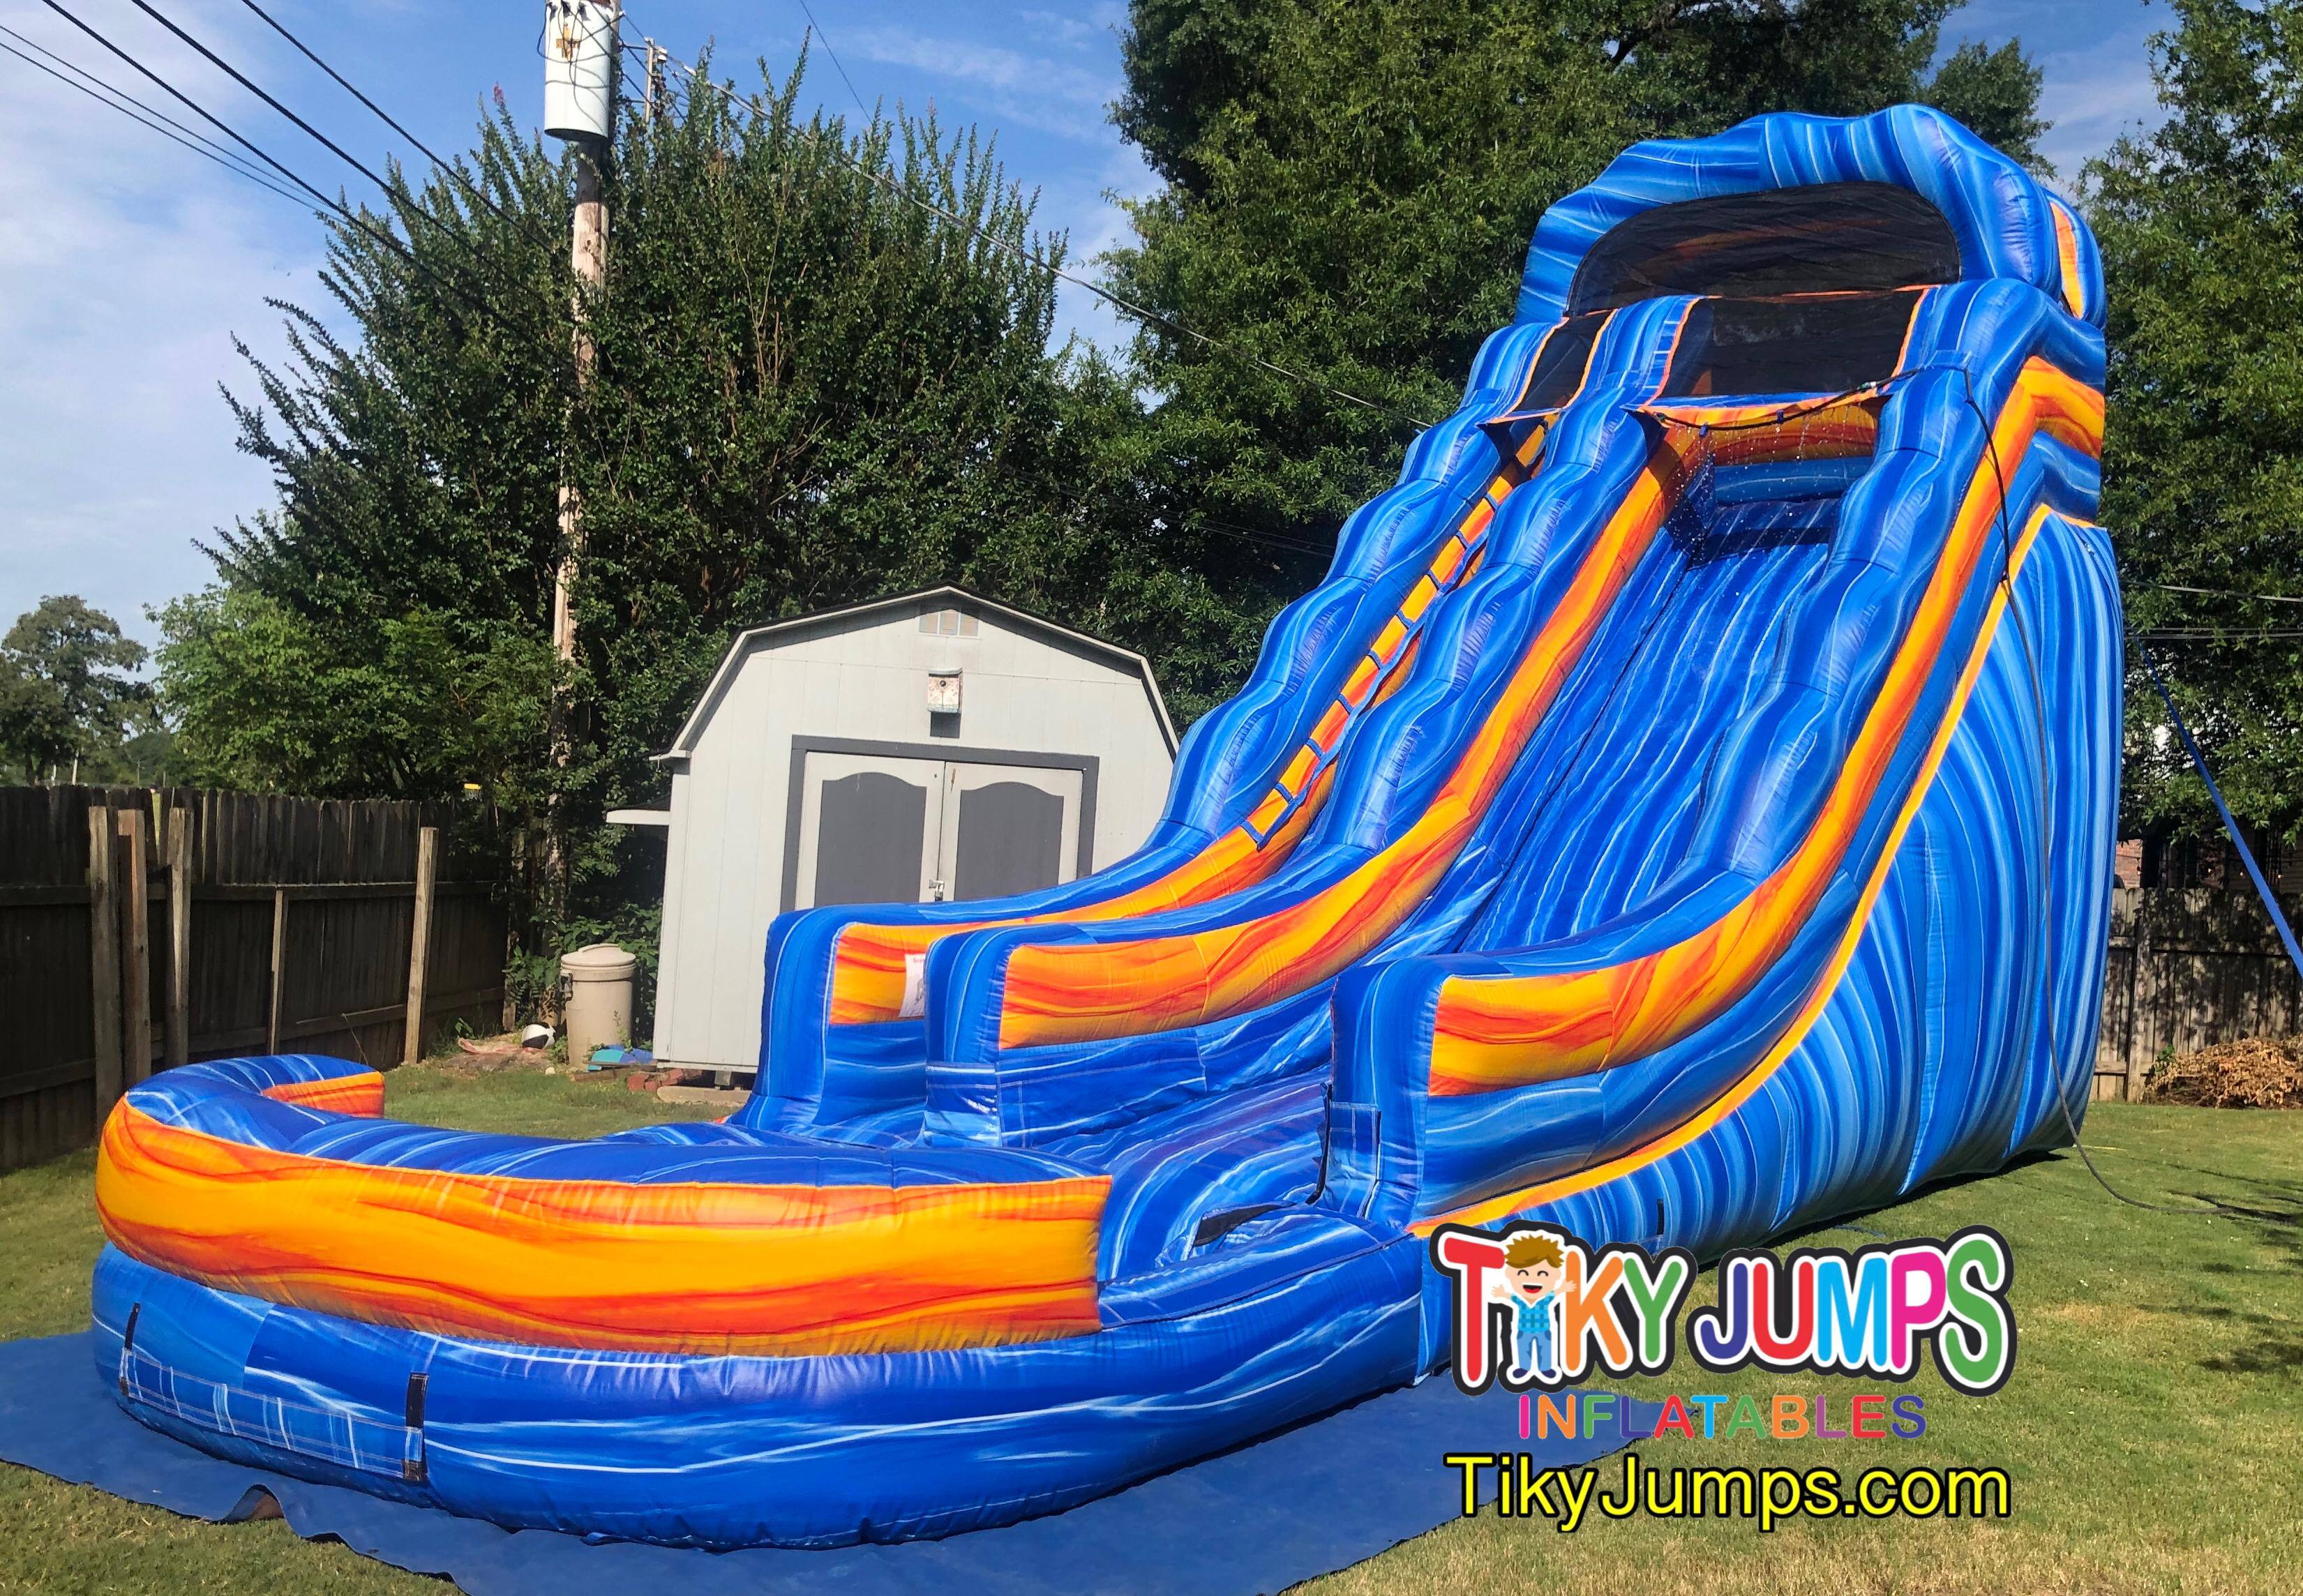 The 20' Blue Electric Water Slide in Memphis TN